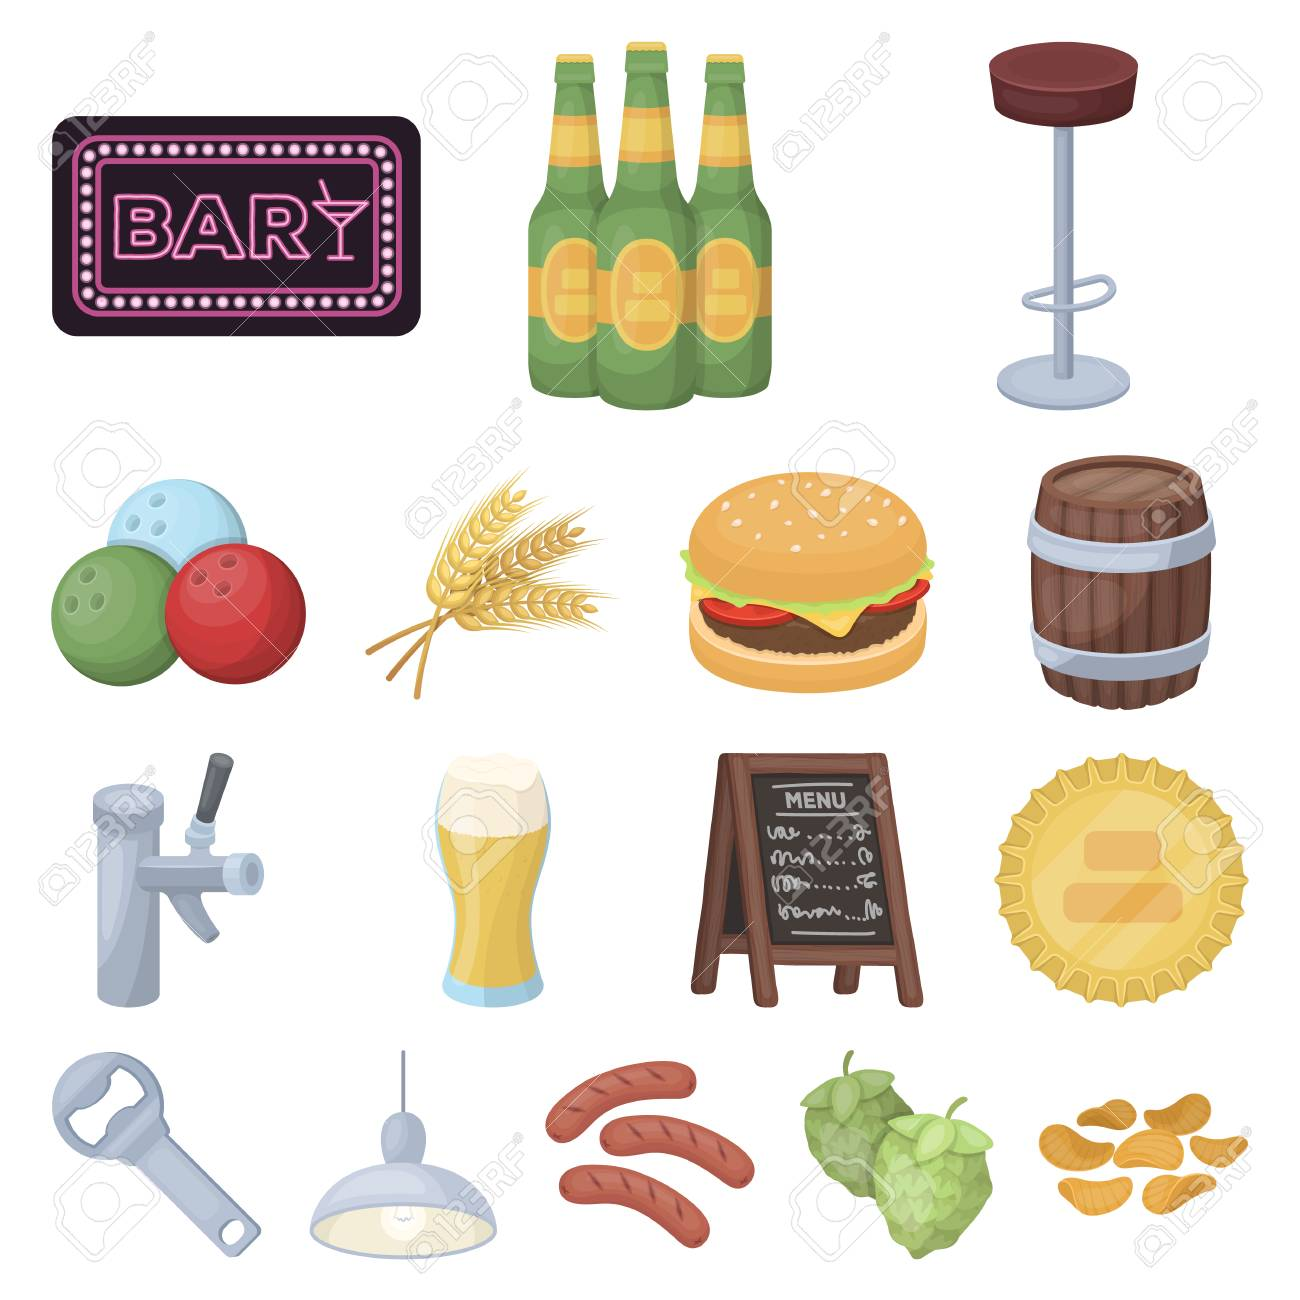 Free lunch download clip. Luncheon clipart pub food